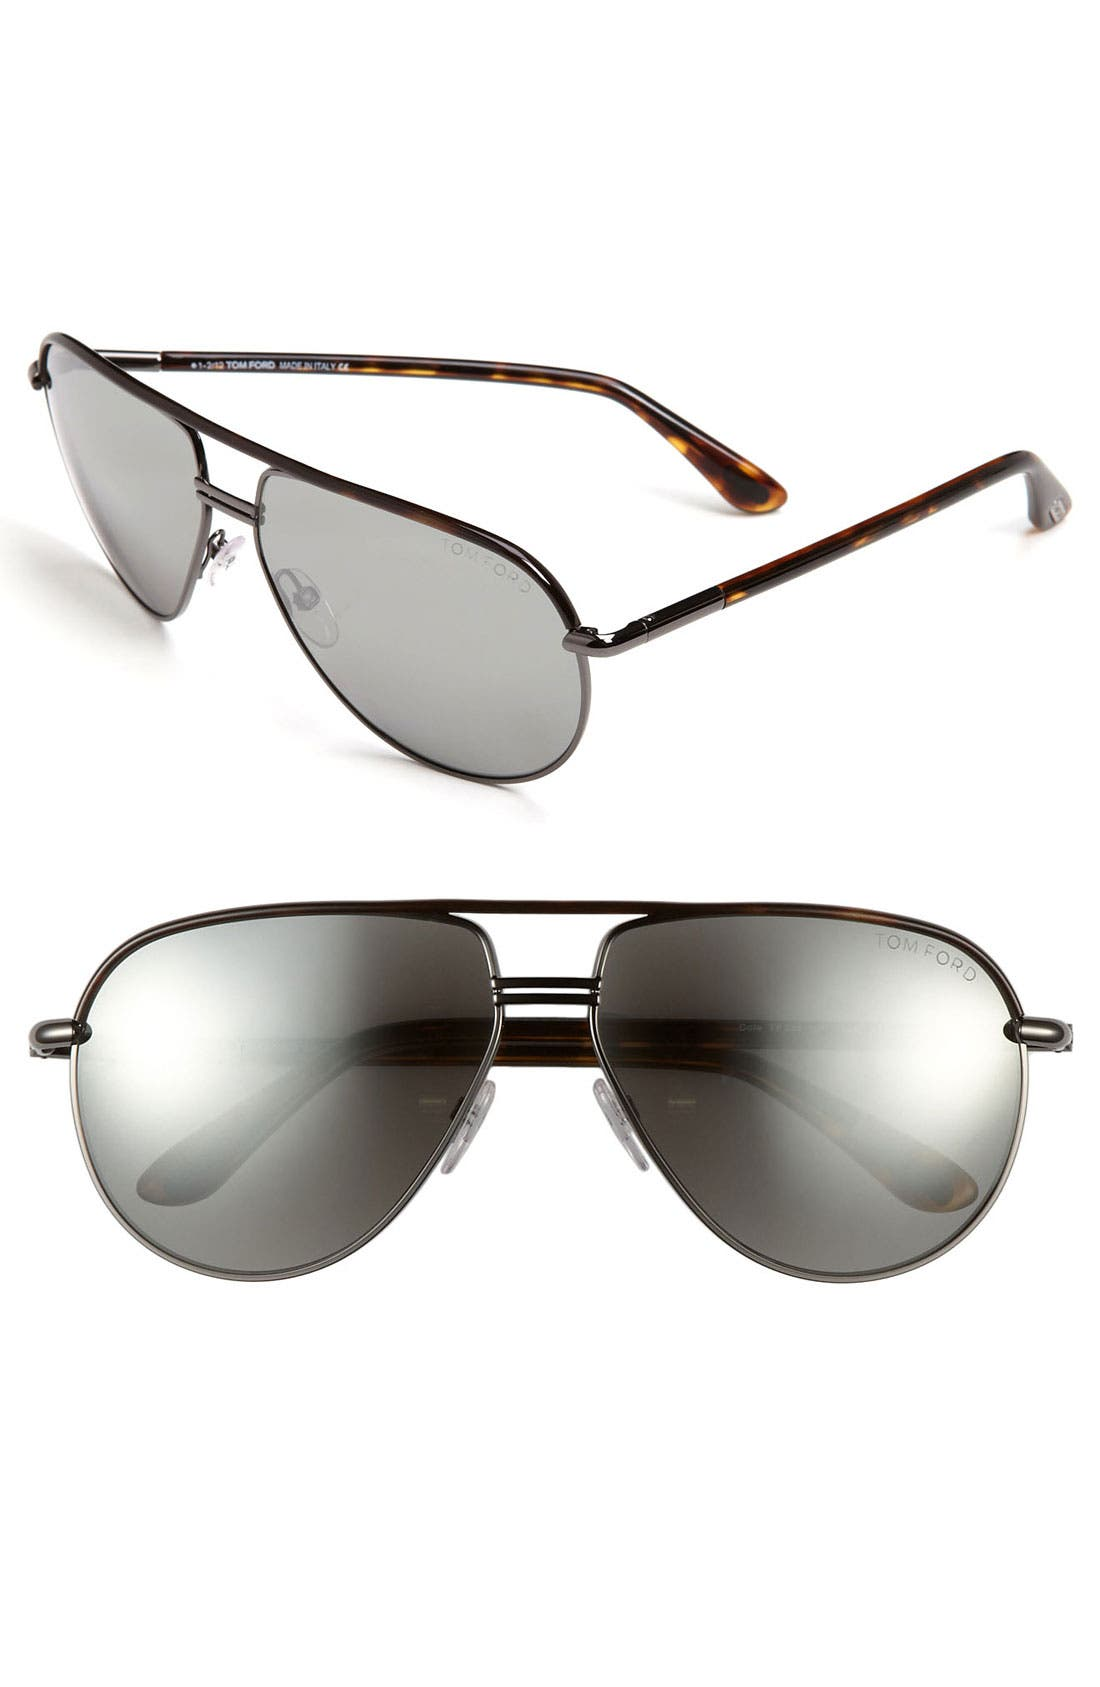 Main Image - Tom Ford 'Cole' 61mm Sunglasses